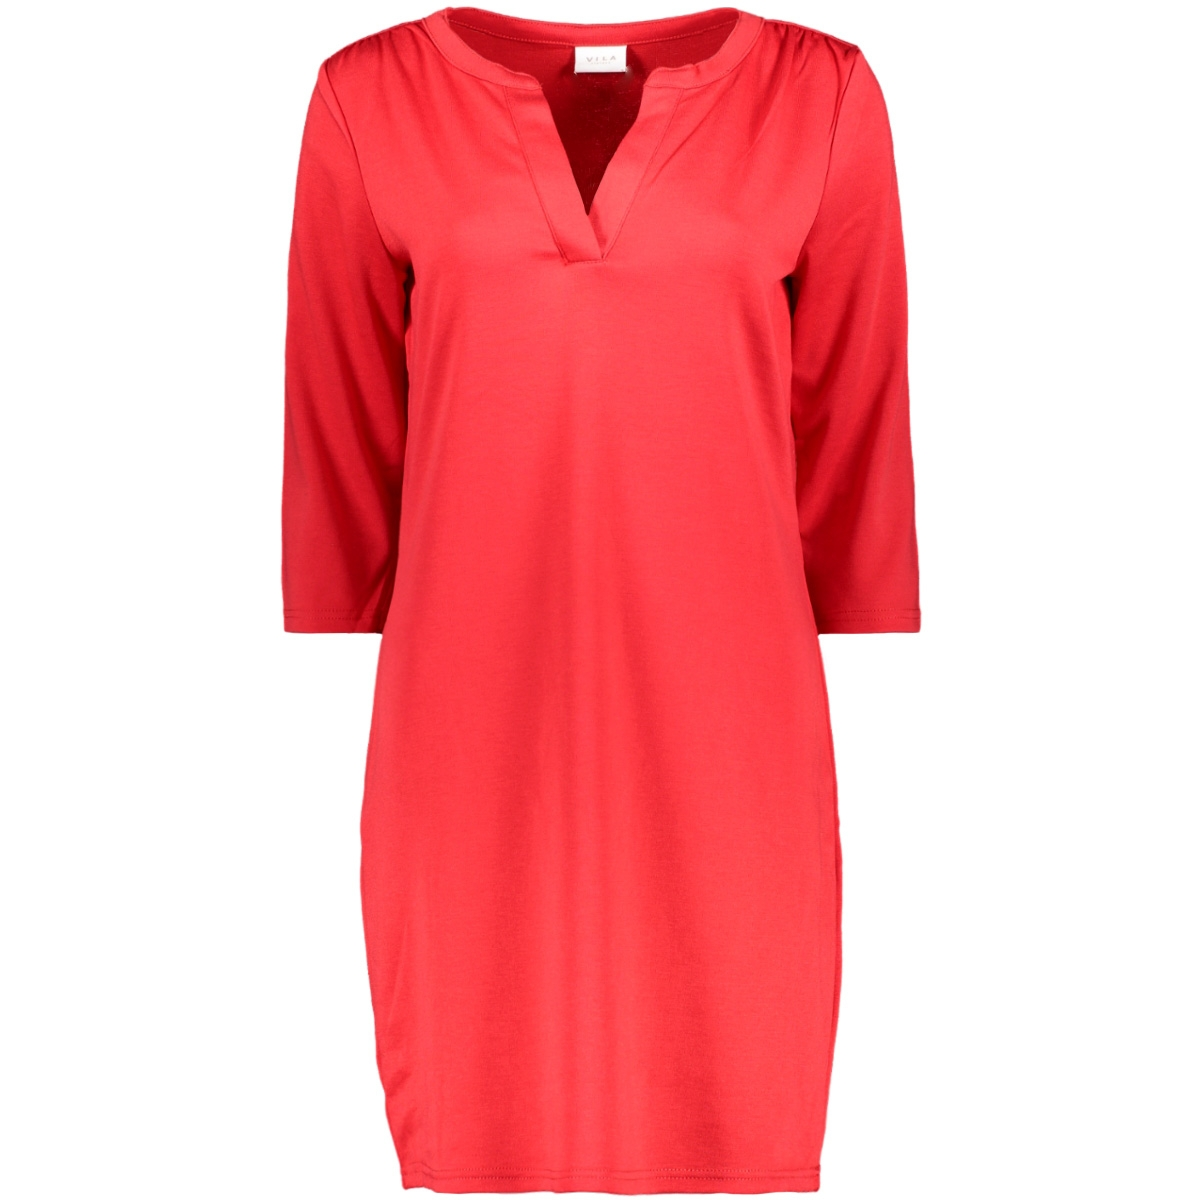 vitinny 3/4 sleeve v-neck dress 14052539 vila jurk tomato puree